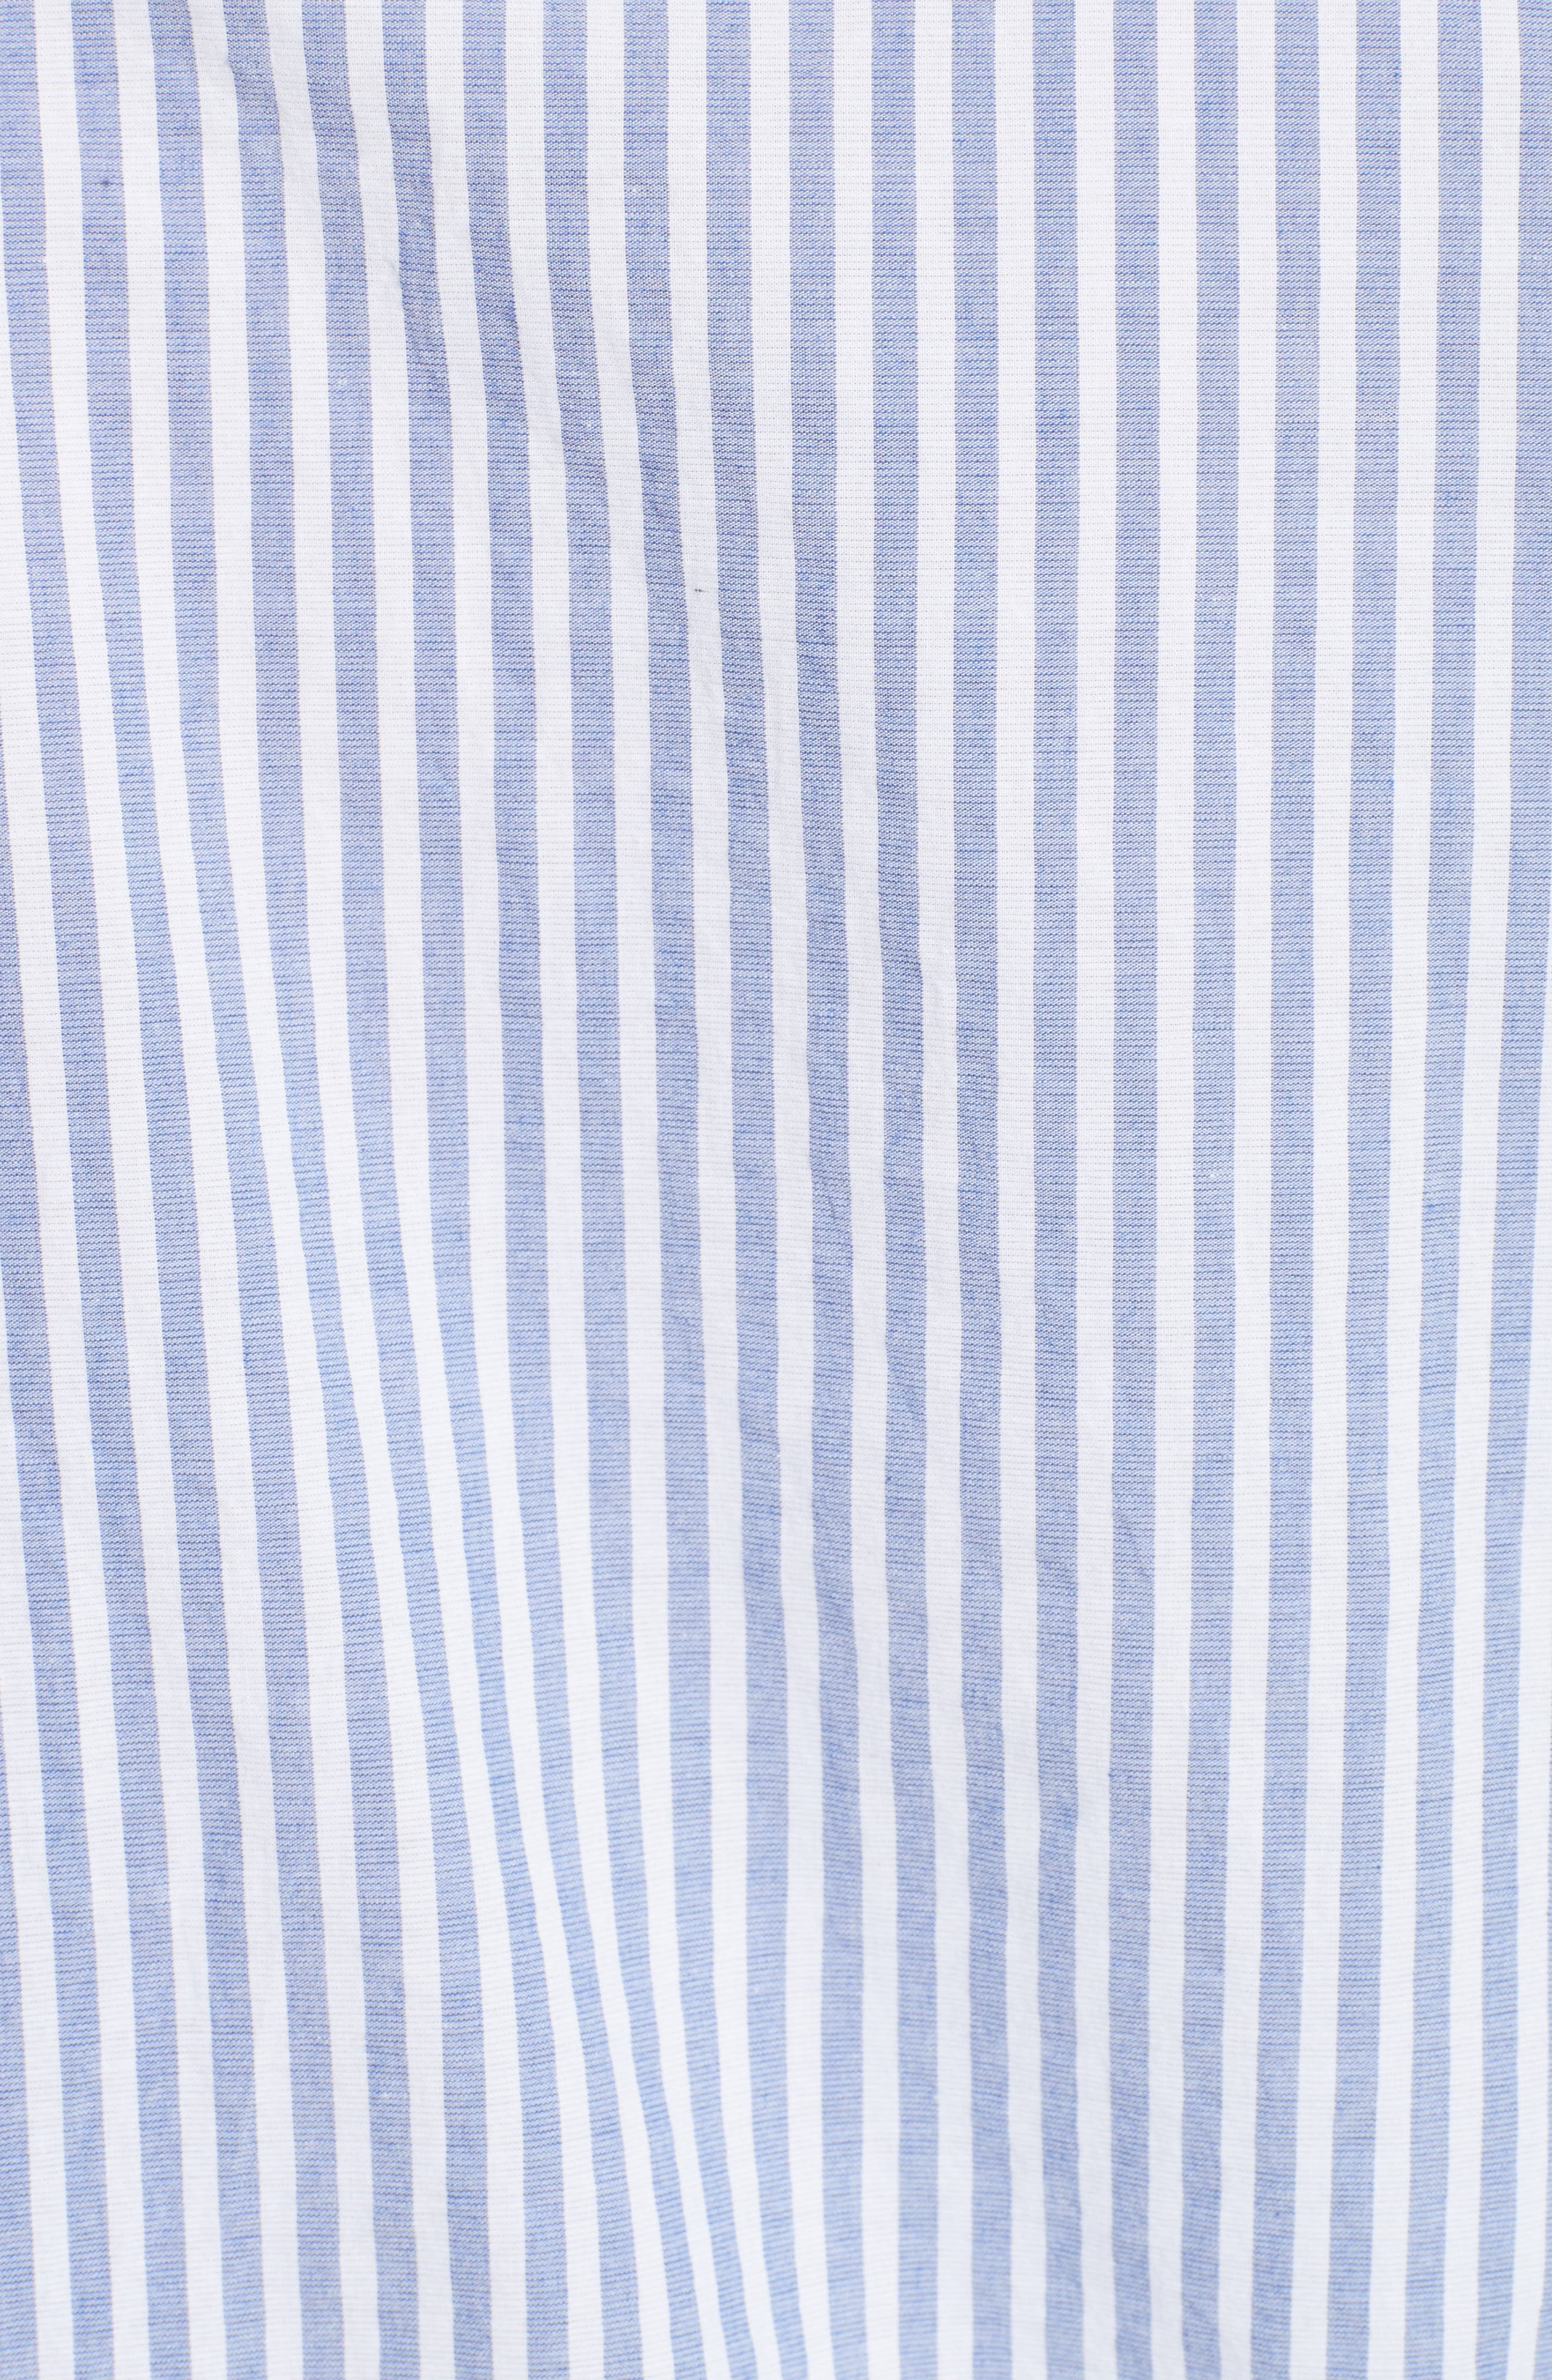 Benfleet Stripe Cotton Top,                             Alternate thumbnail 5, color,                             456